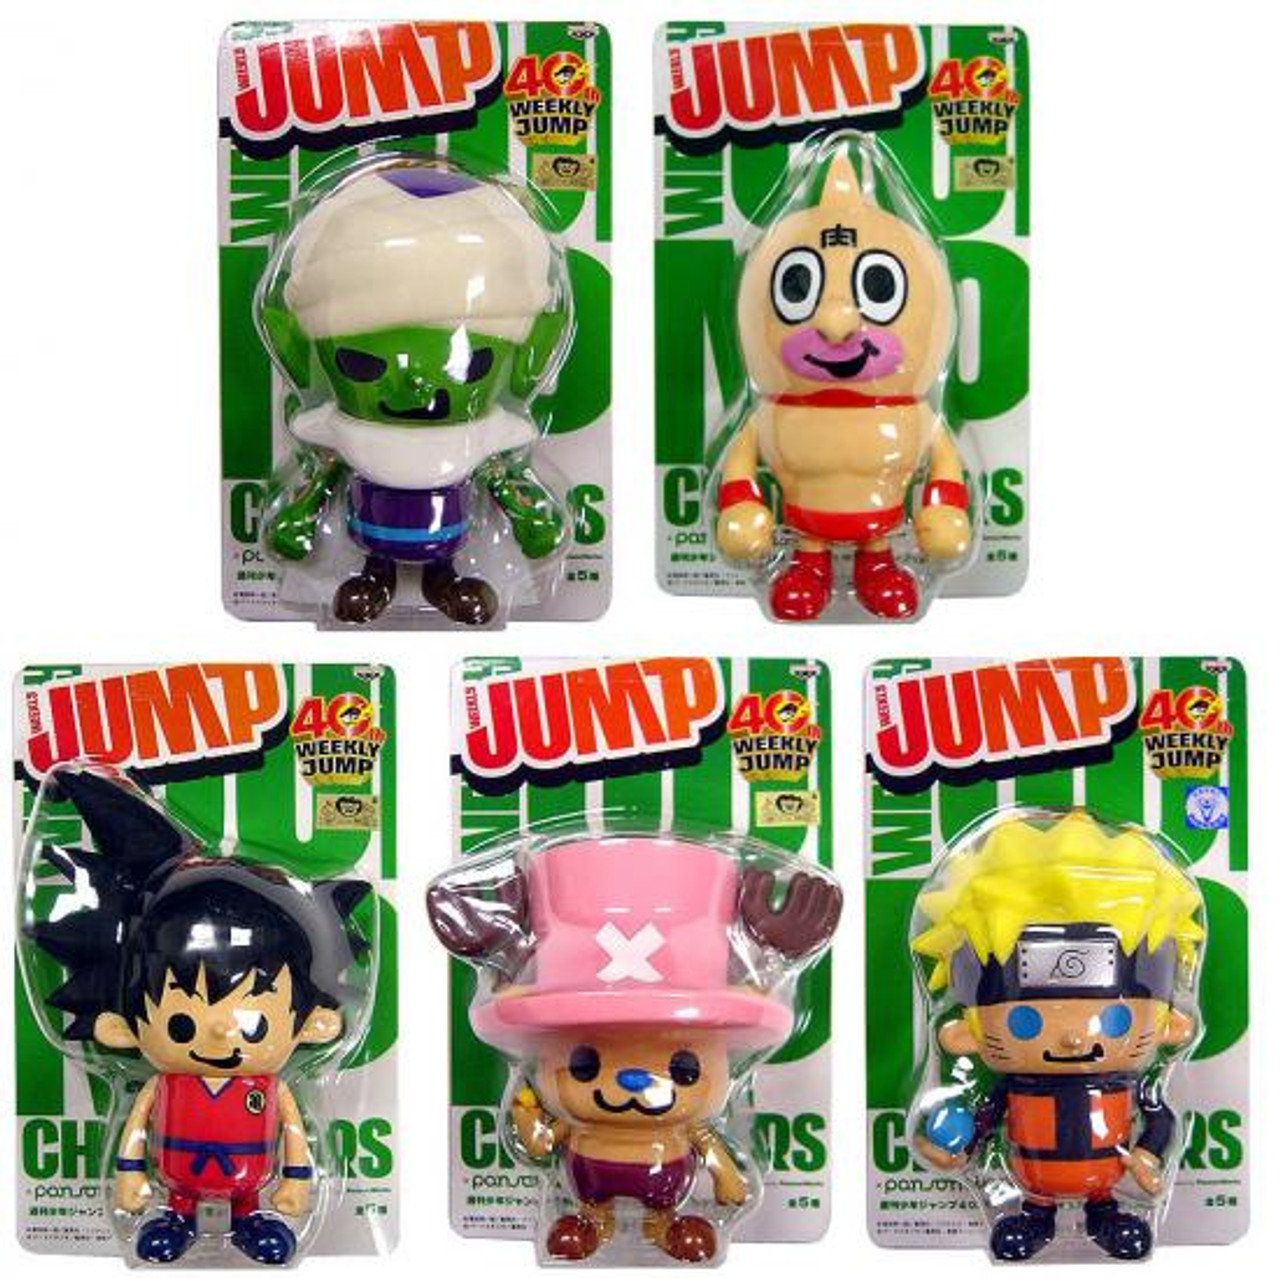 Shonen Jump Weekly Jump Series 2 Set of 5 PVC PVC Figures